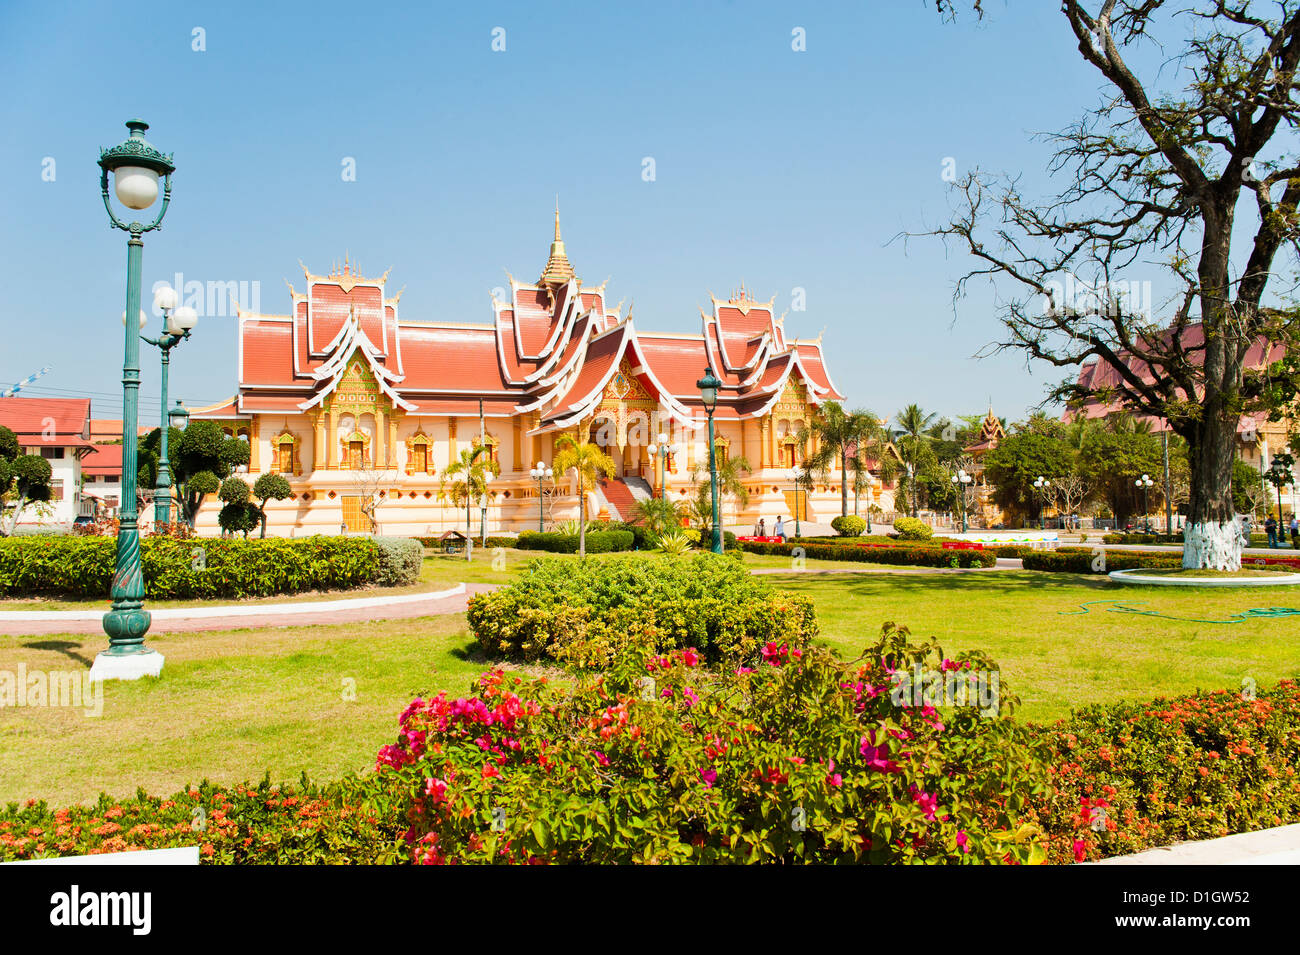 Beautifully decorated building at Pha That Luang, Vientiane, Laos, Indochina, Southeast Asia, Asia - Stock Image